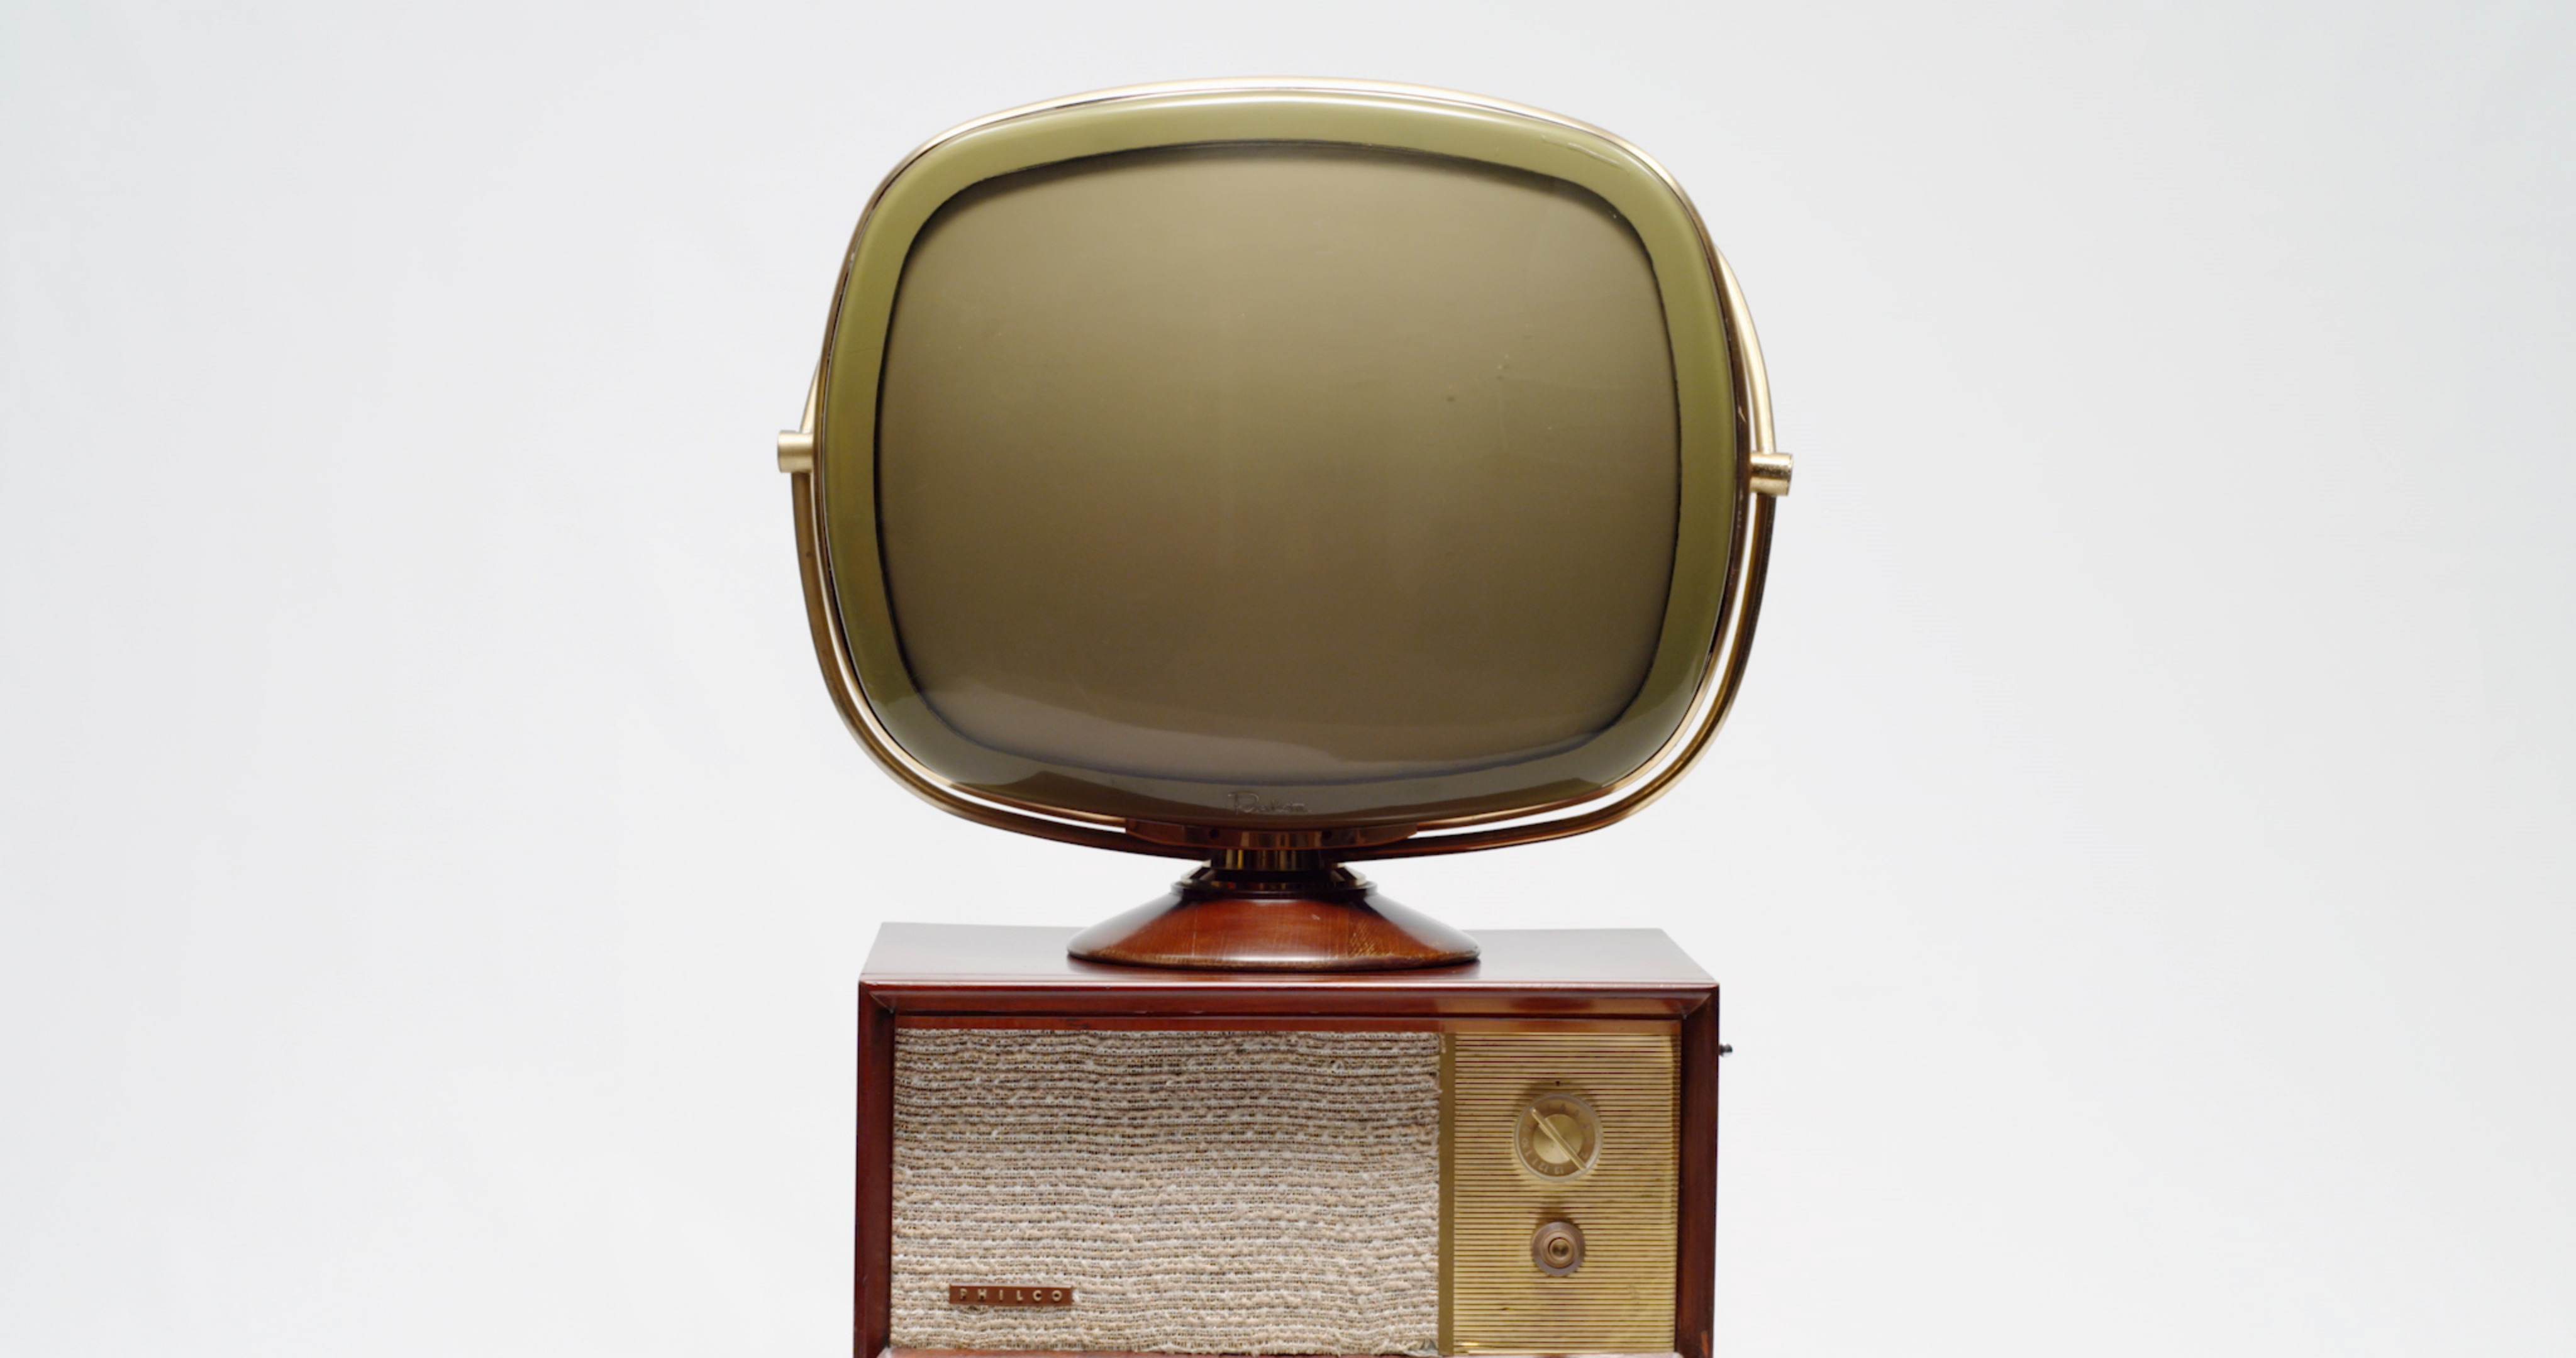 Philco Predicta footage